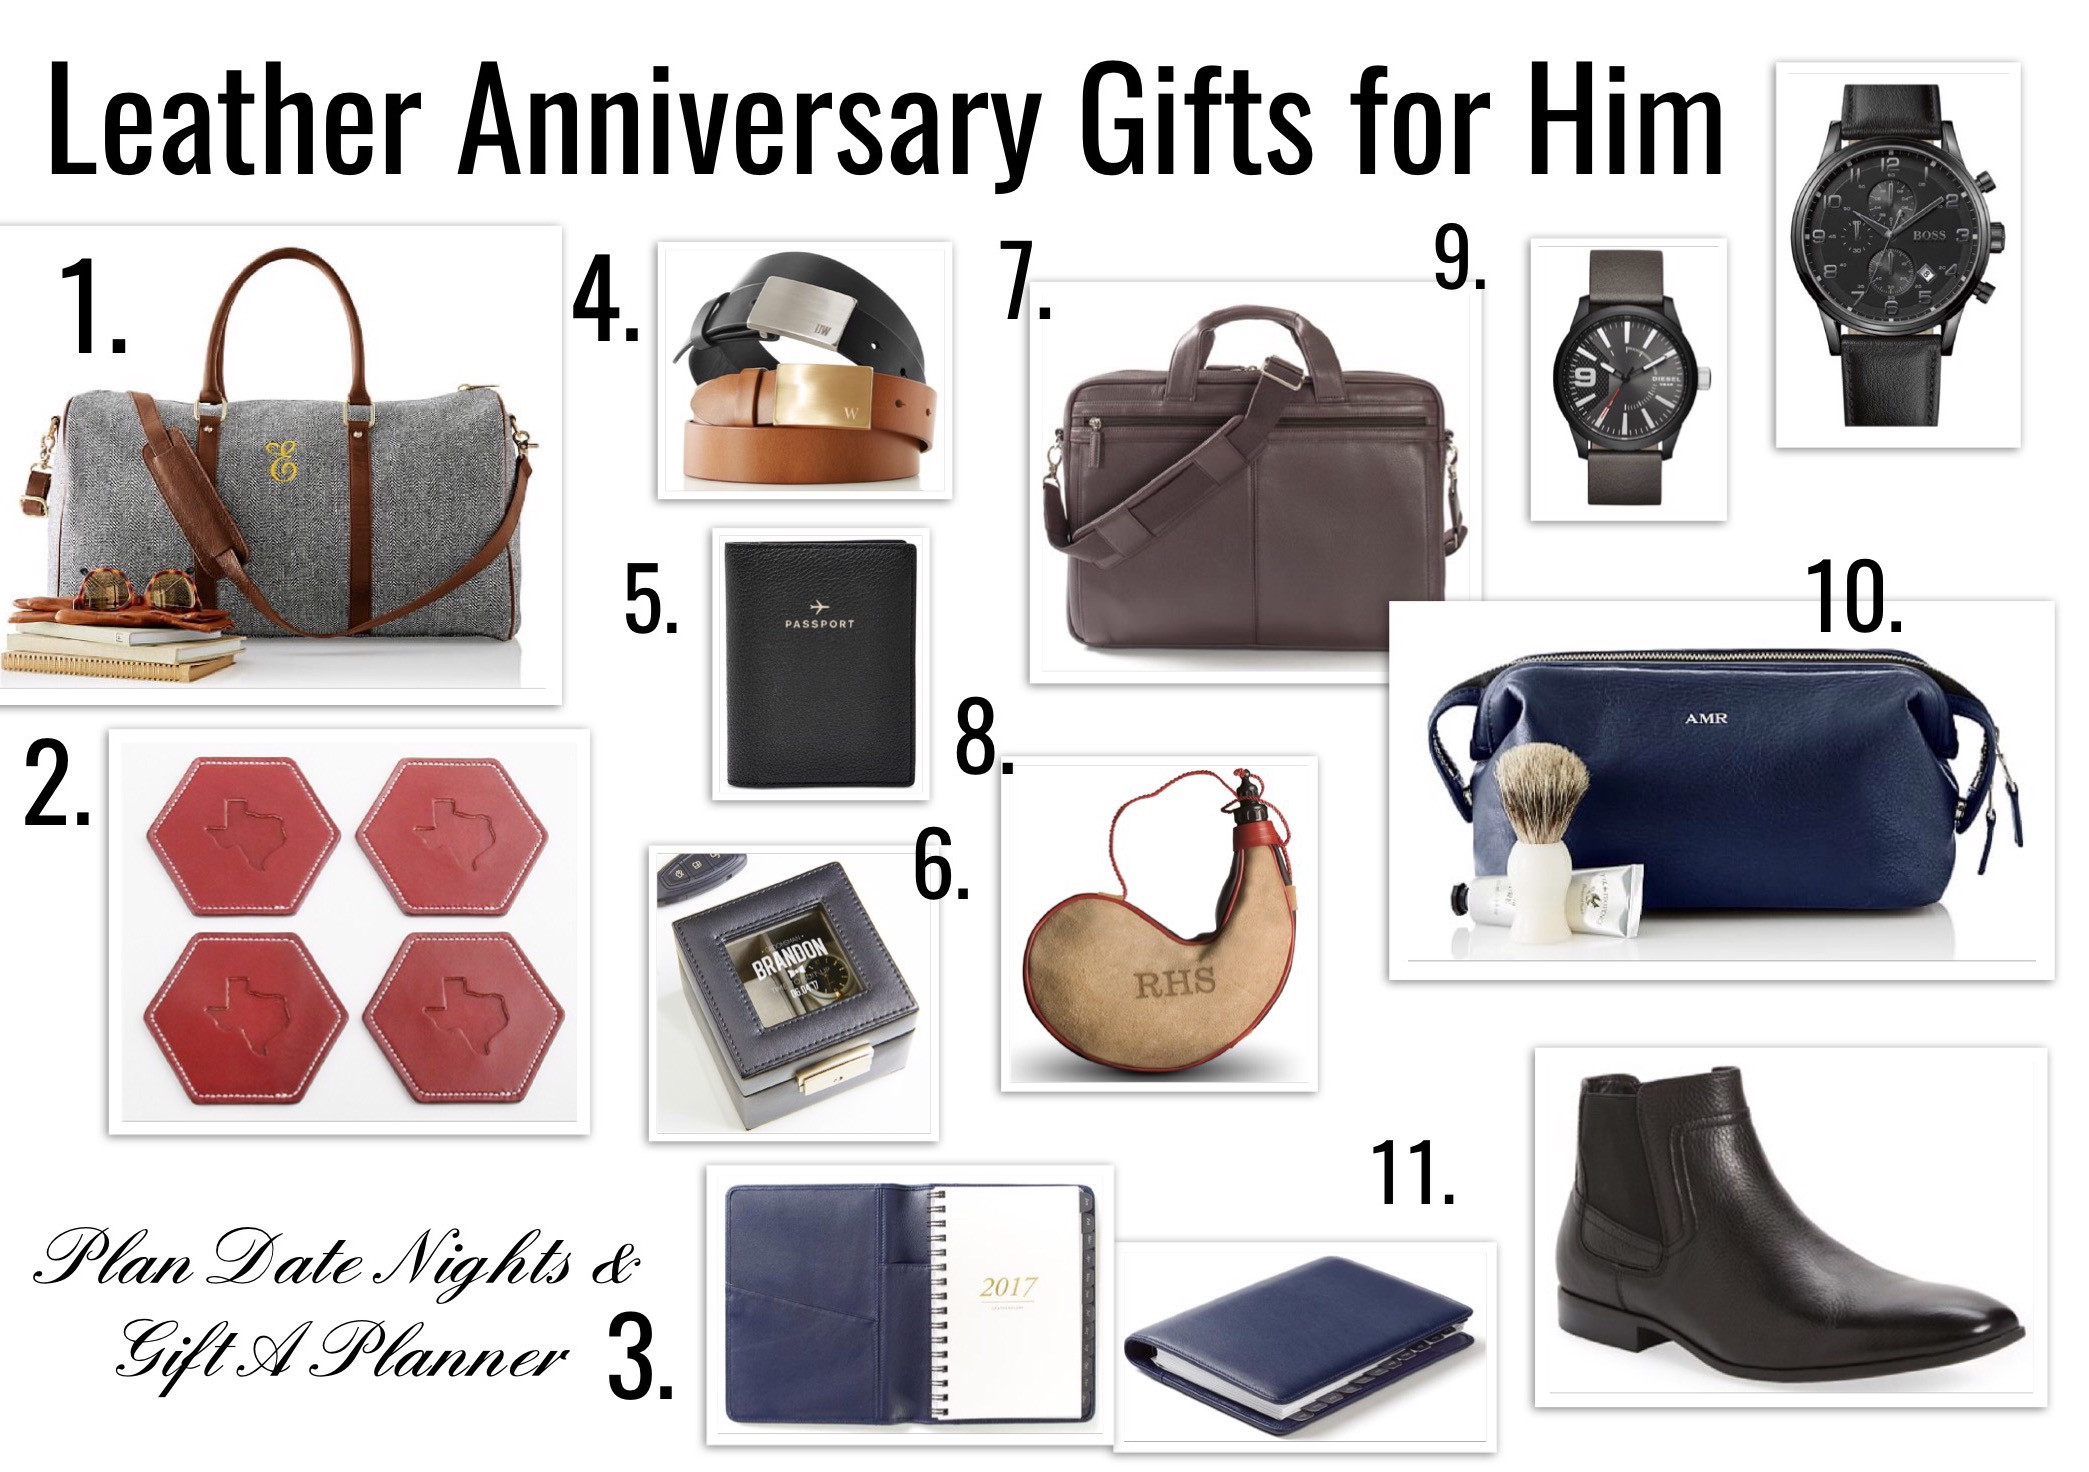 Best ideas about Leather Gift Ideas . Save or Pin 3 Year Anniversary Leather Gift Ideas For Him Now.